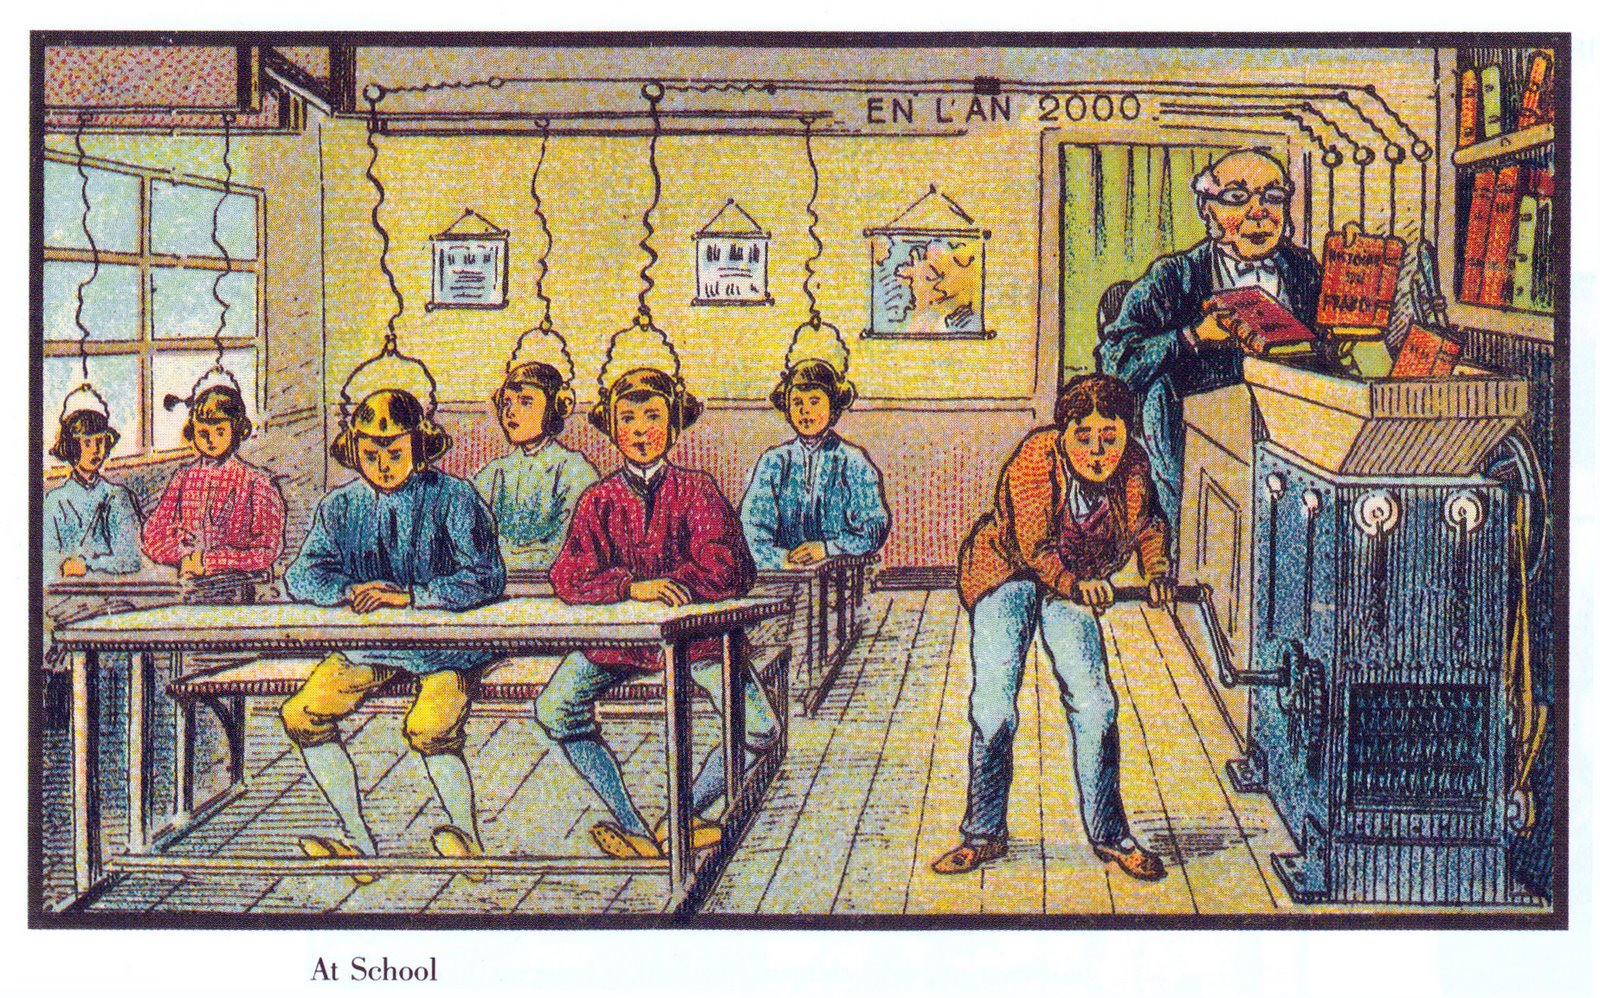 School in the year 2000